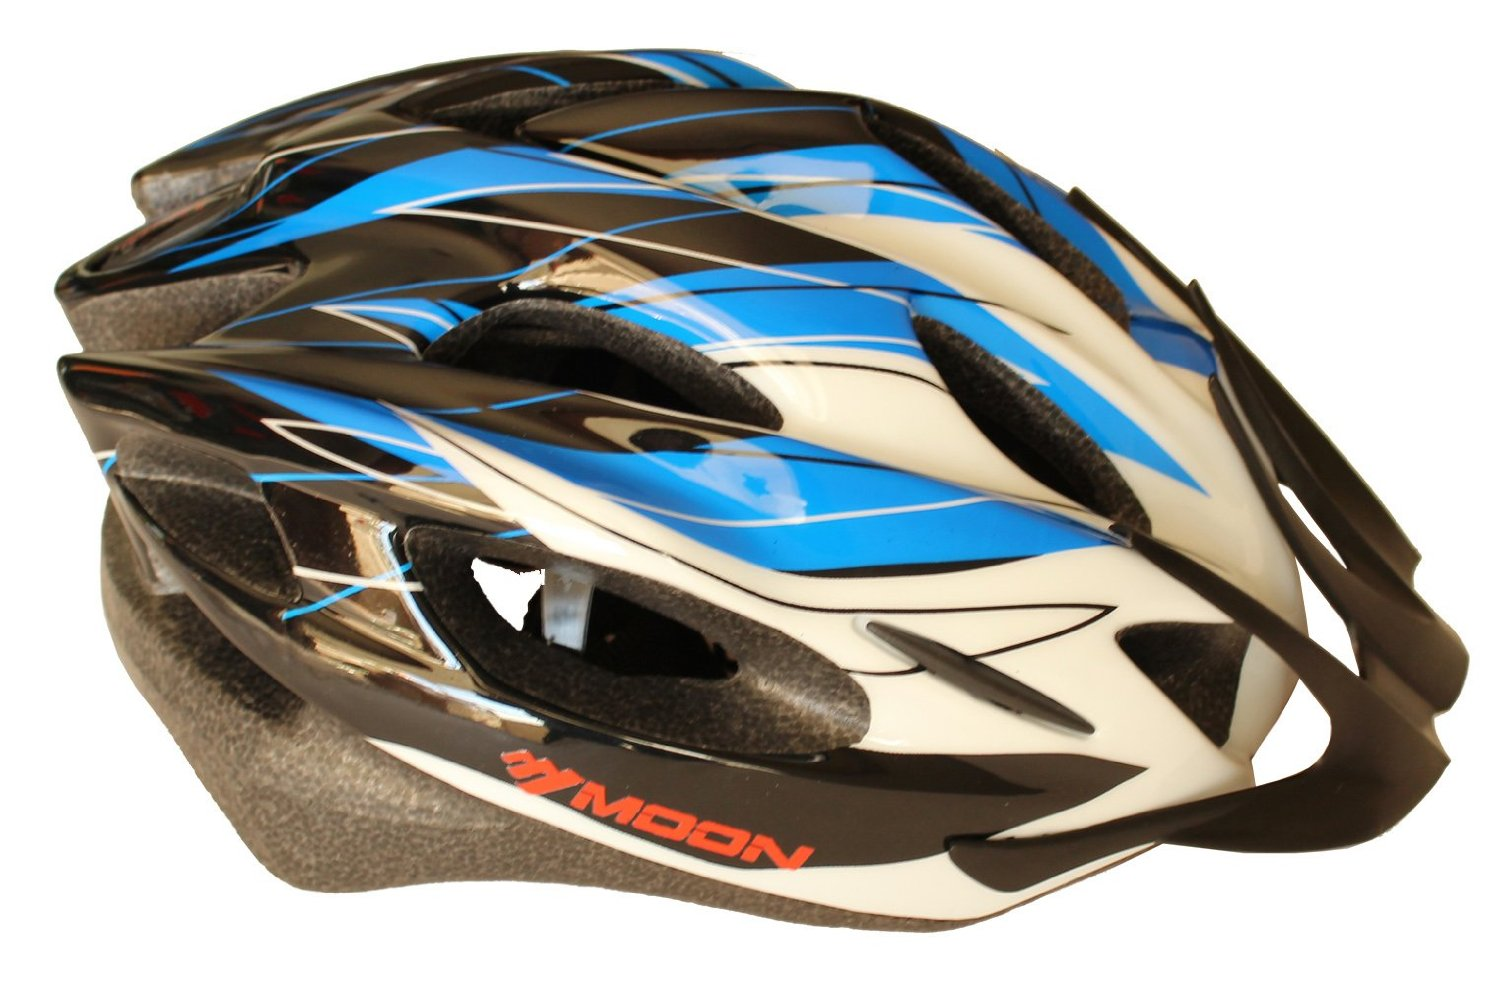 Blue Moon Bicycle Helmets